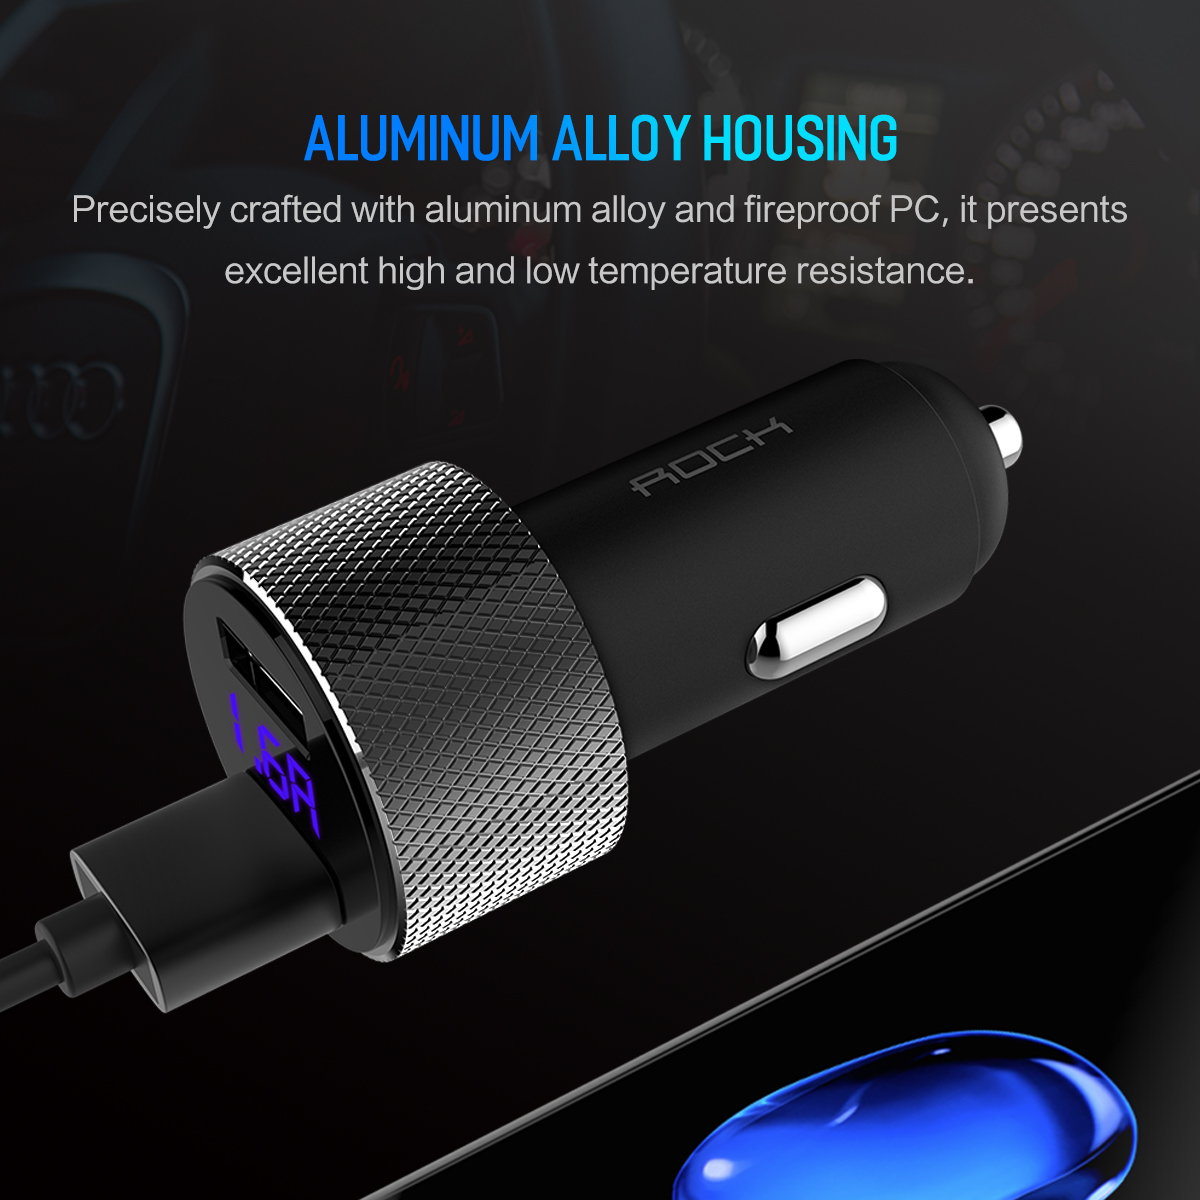 HTB1DELJjpooBKNjSZPhq6A2CXXaT - ROCK 5V 3.4A Metal Dual USB Car Charger Digital Display For iPhone X 8 XS MAX 7 Xiaomi Samsung Fast Charging Voltage Monitoring